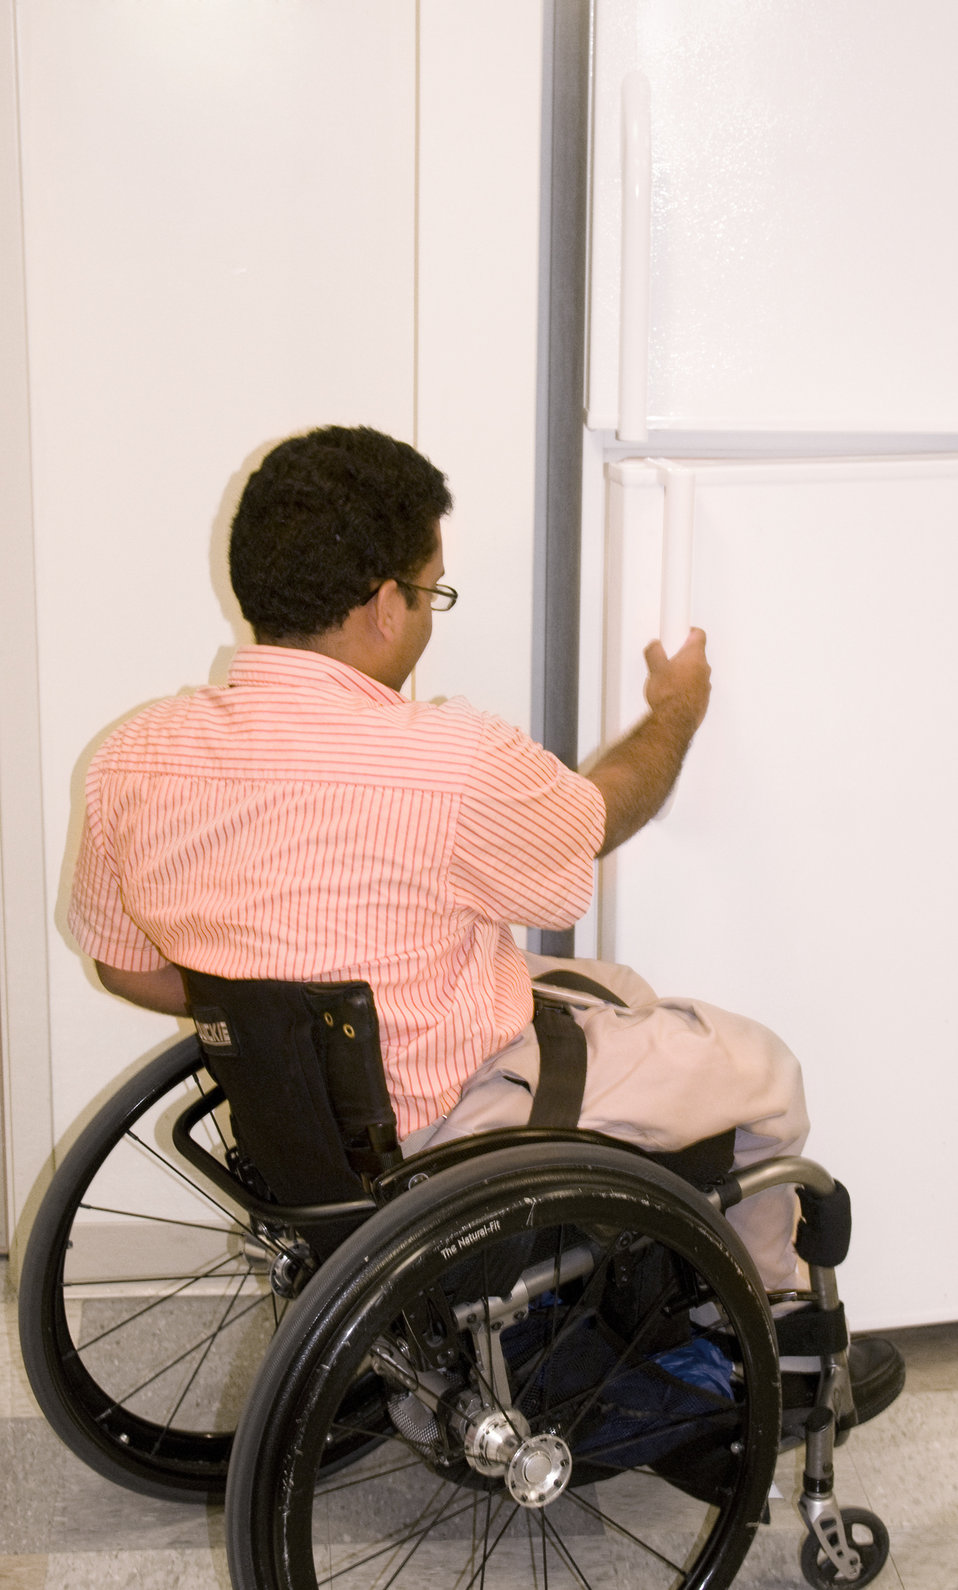 This man who was seated in his wheelchair, was photographed in this kitchen setting while opening the refrigerator's door. Note that the hei